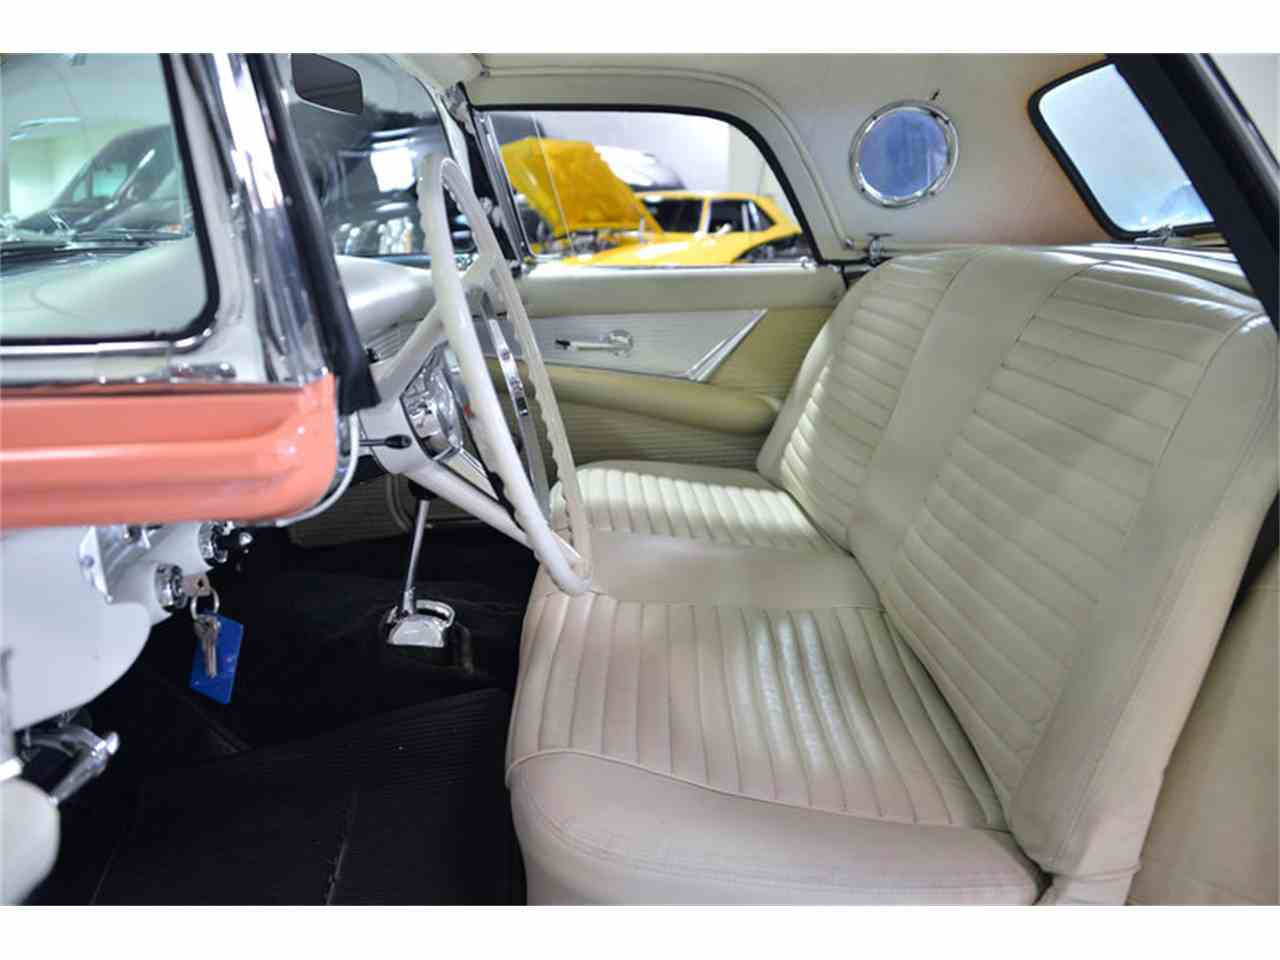 Large Picture of 1957 Ford Thunderbird located in Chatsworth California - $149,900.00 - H9LR